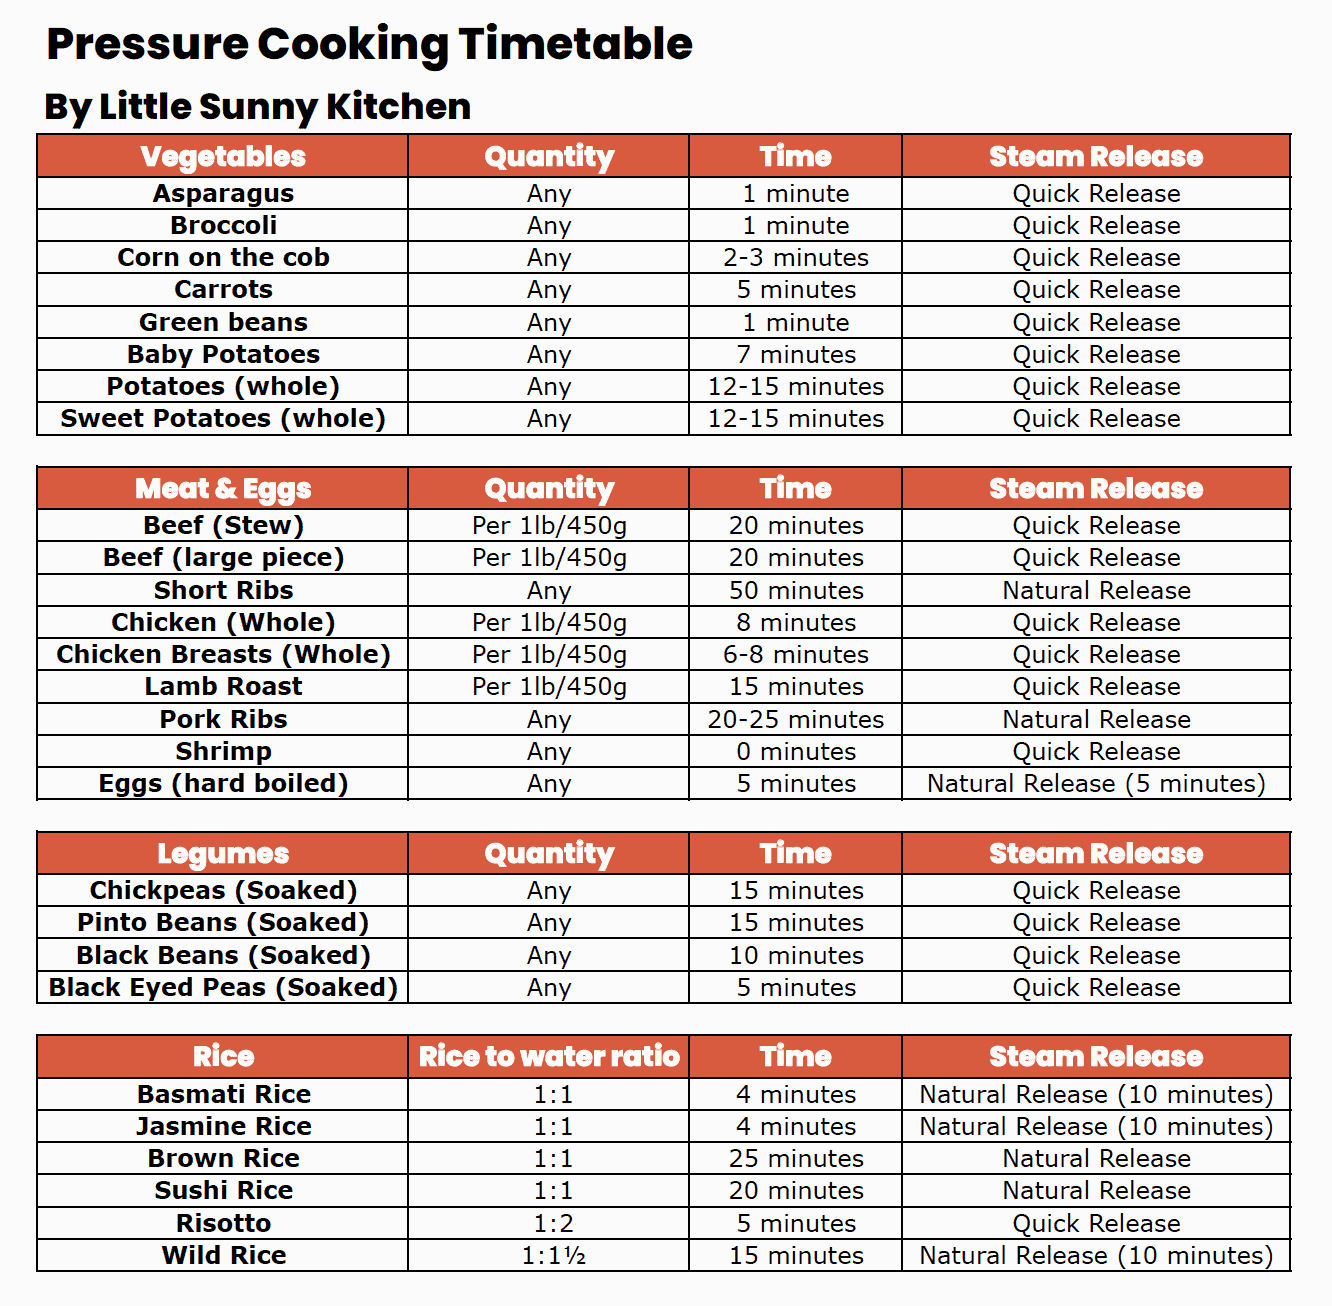 Instant Pot Pressure Cooking Timetable